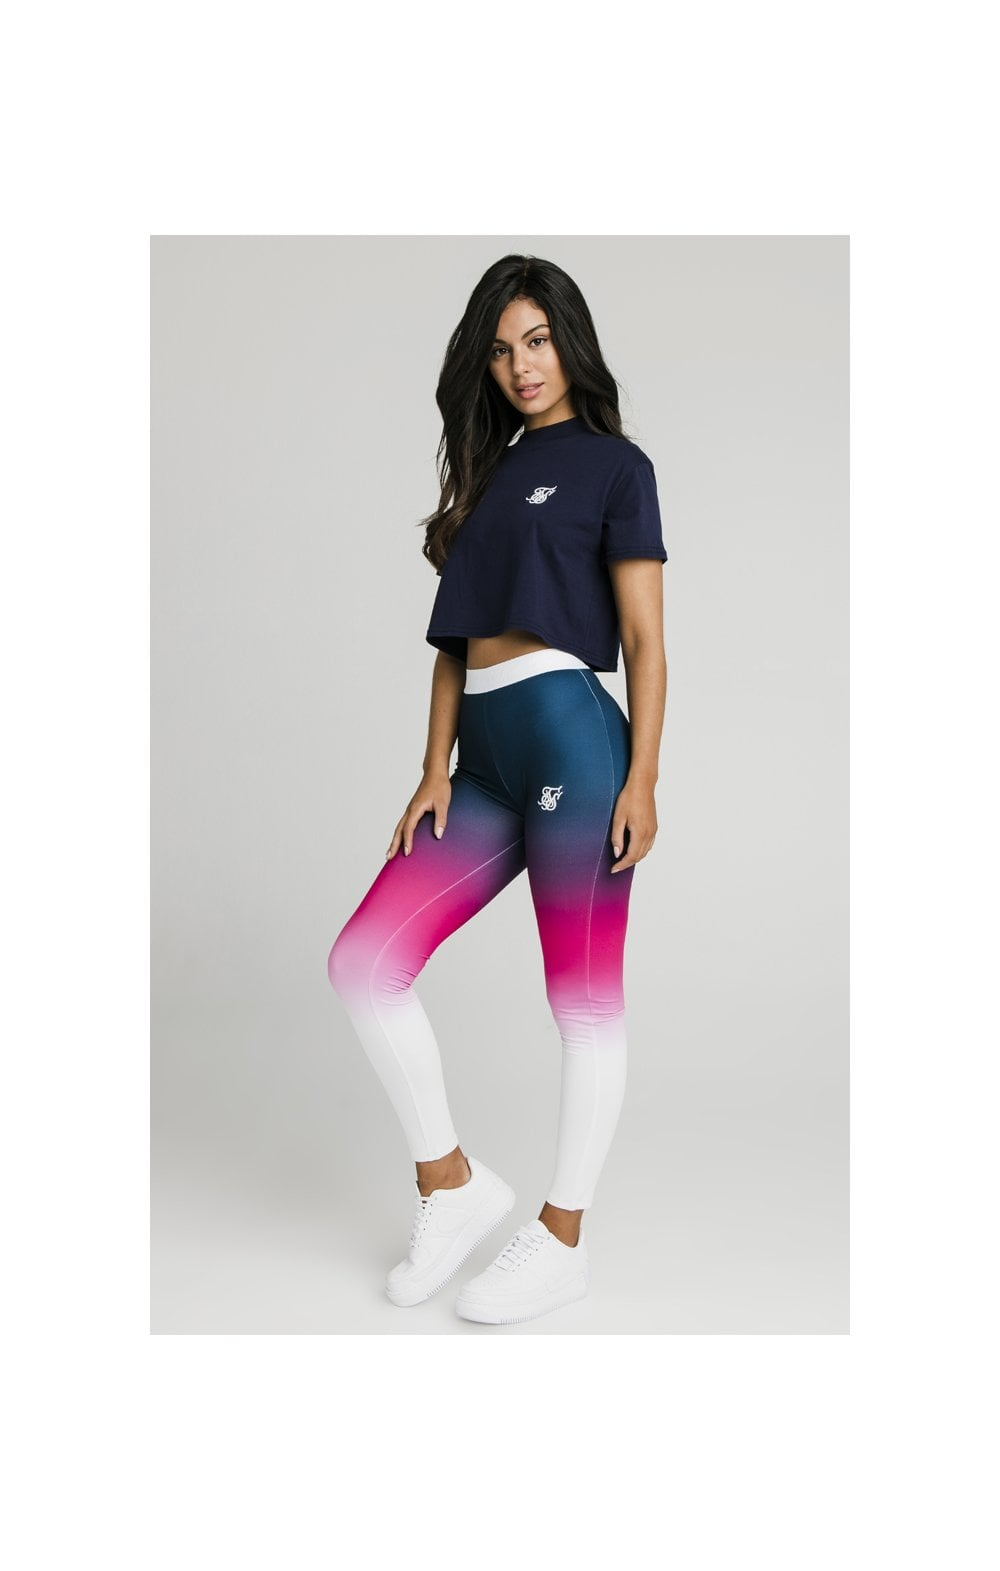 Charger l'image dans la galerie, SikSilk Fade Tape Leggings - Navy, Pink & White (3)